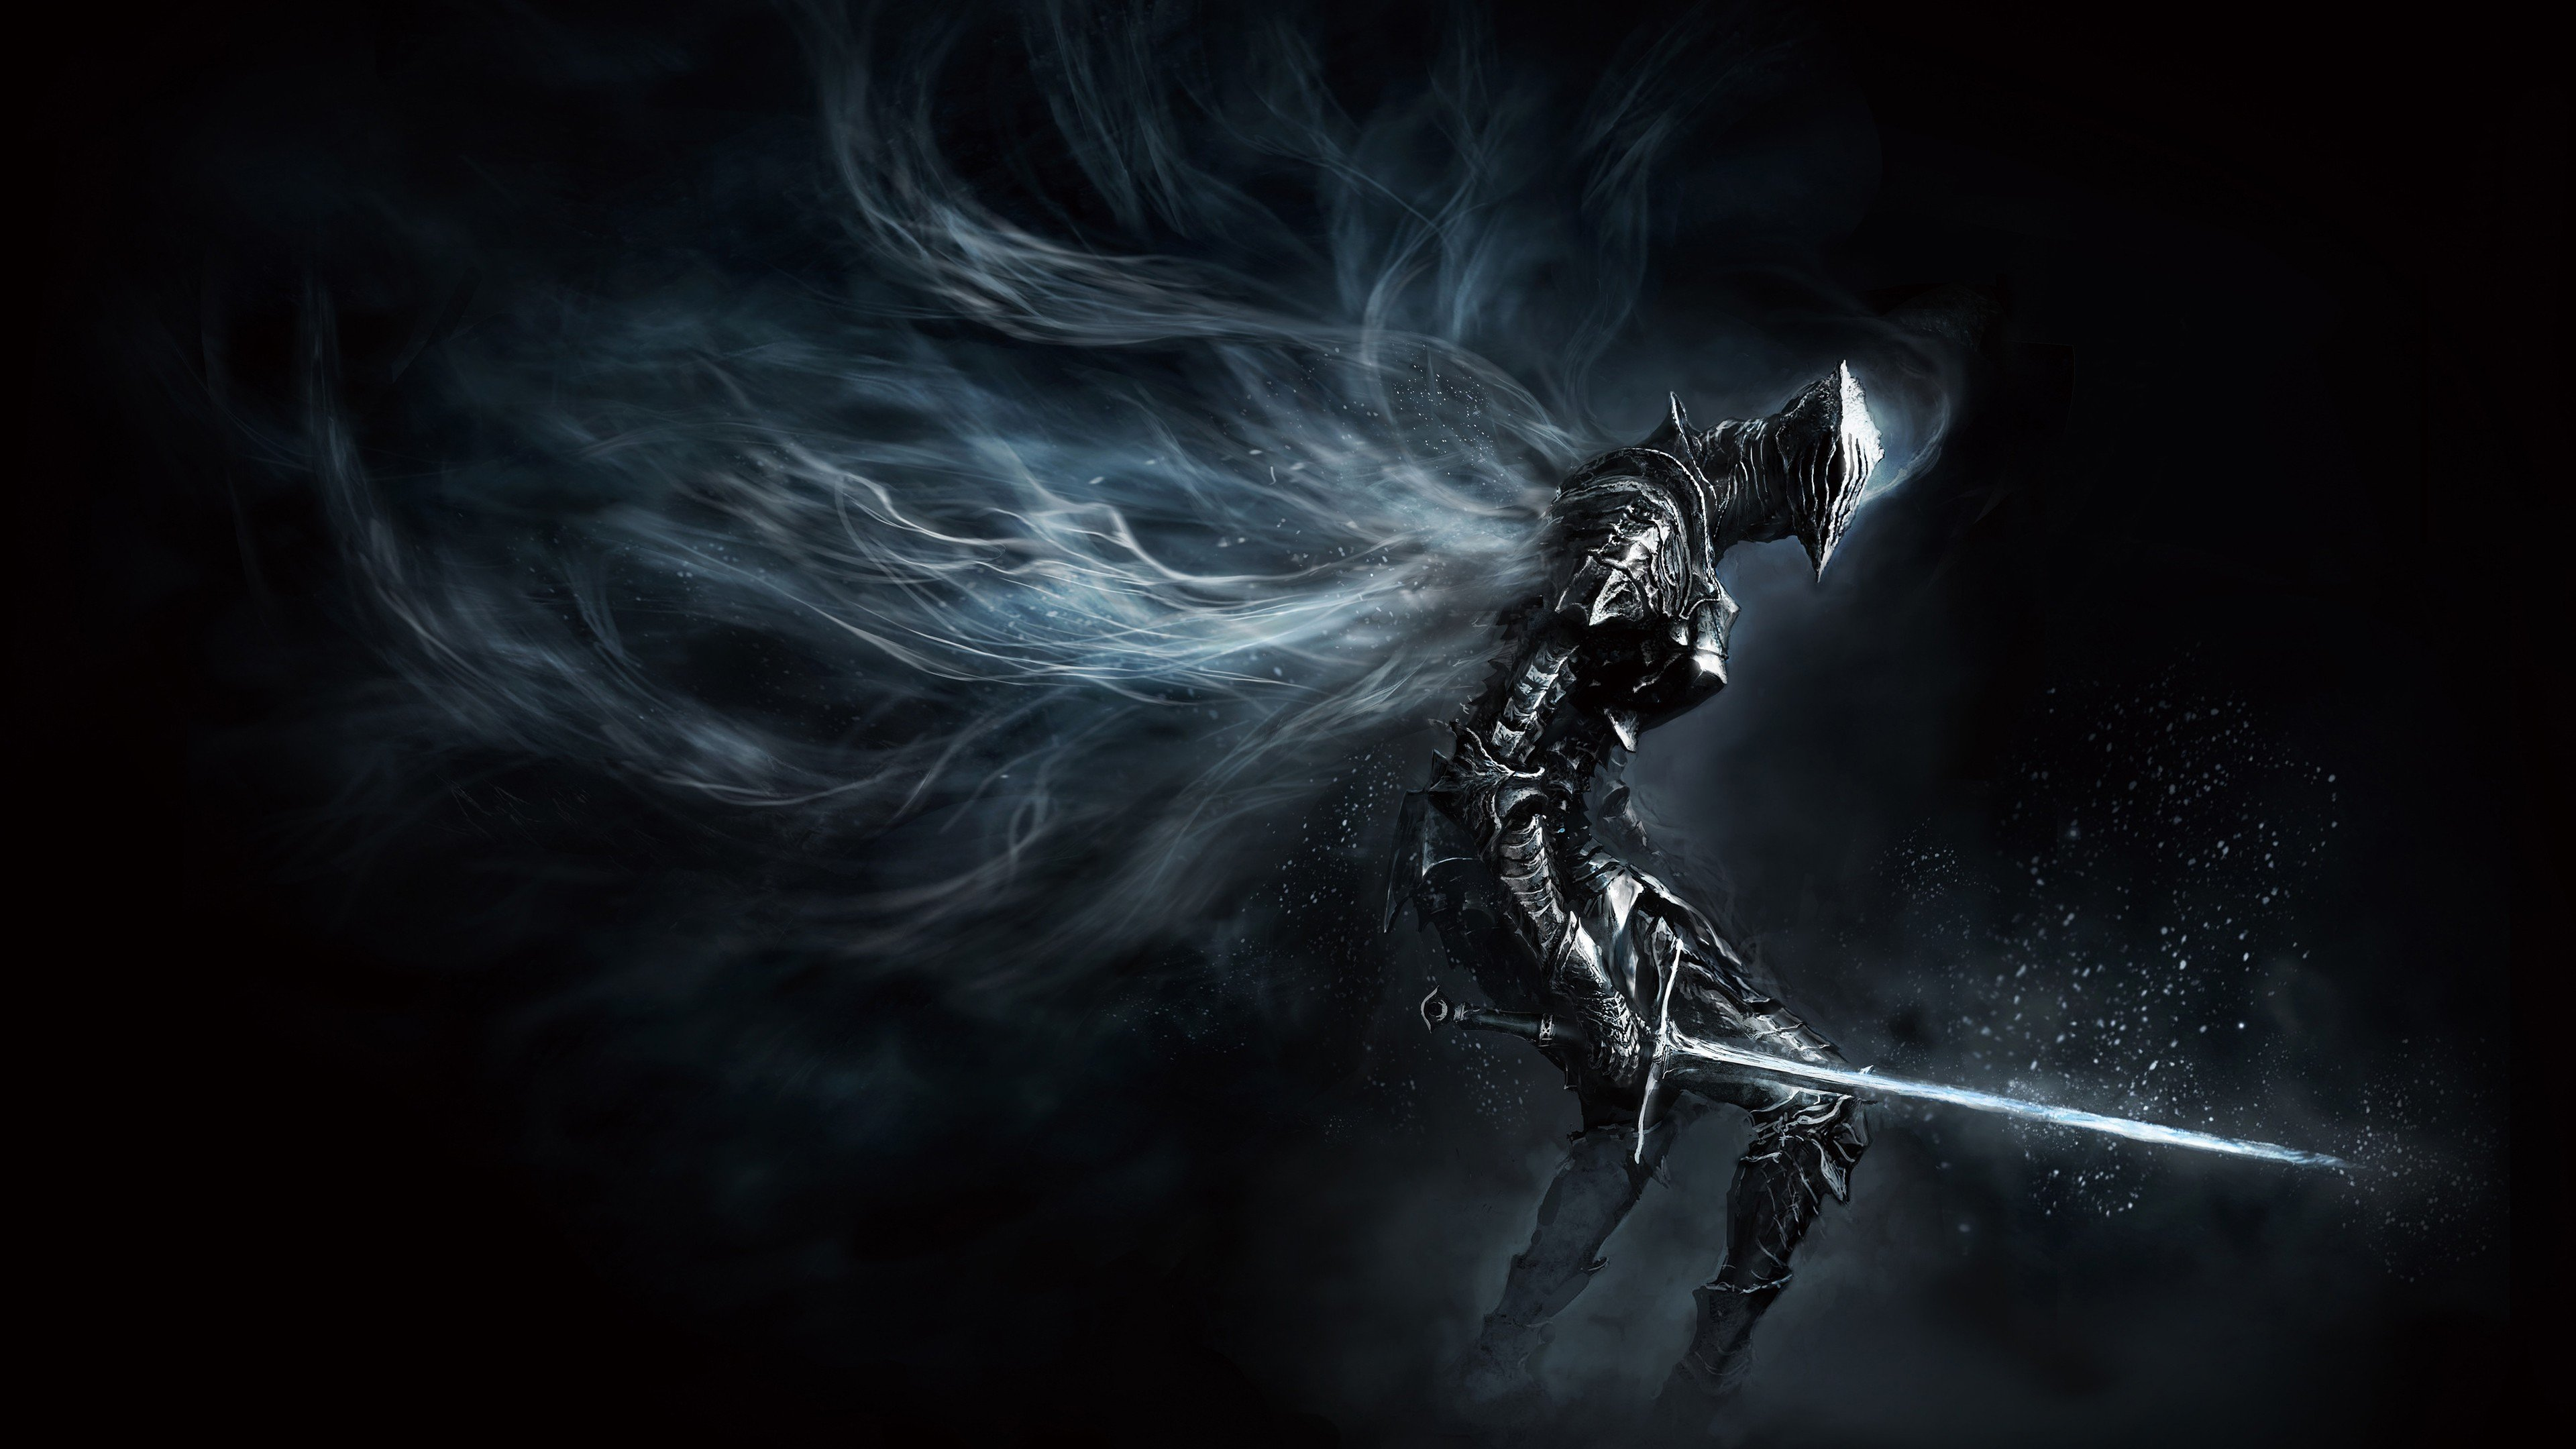 dark souls 3 4k hd wallpaper 3840x2160 HTML code